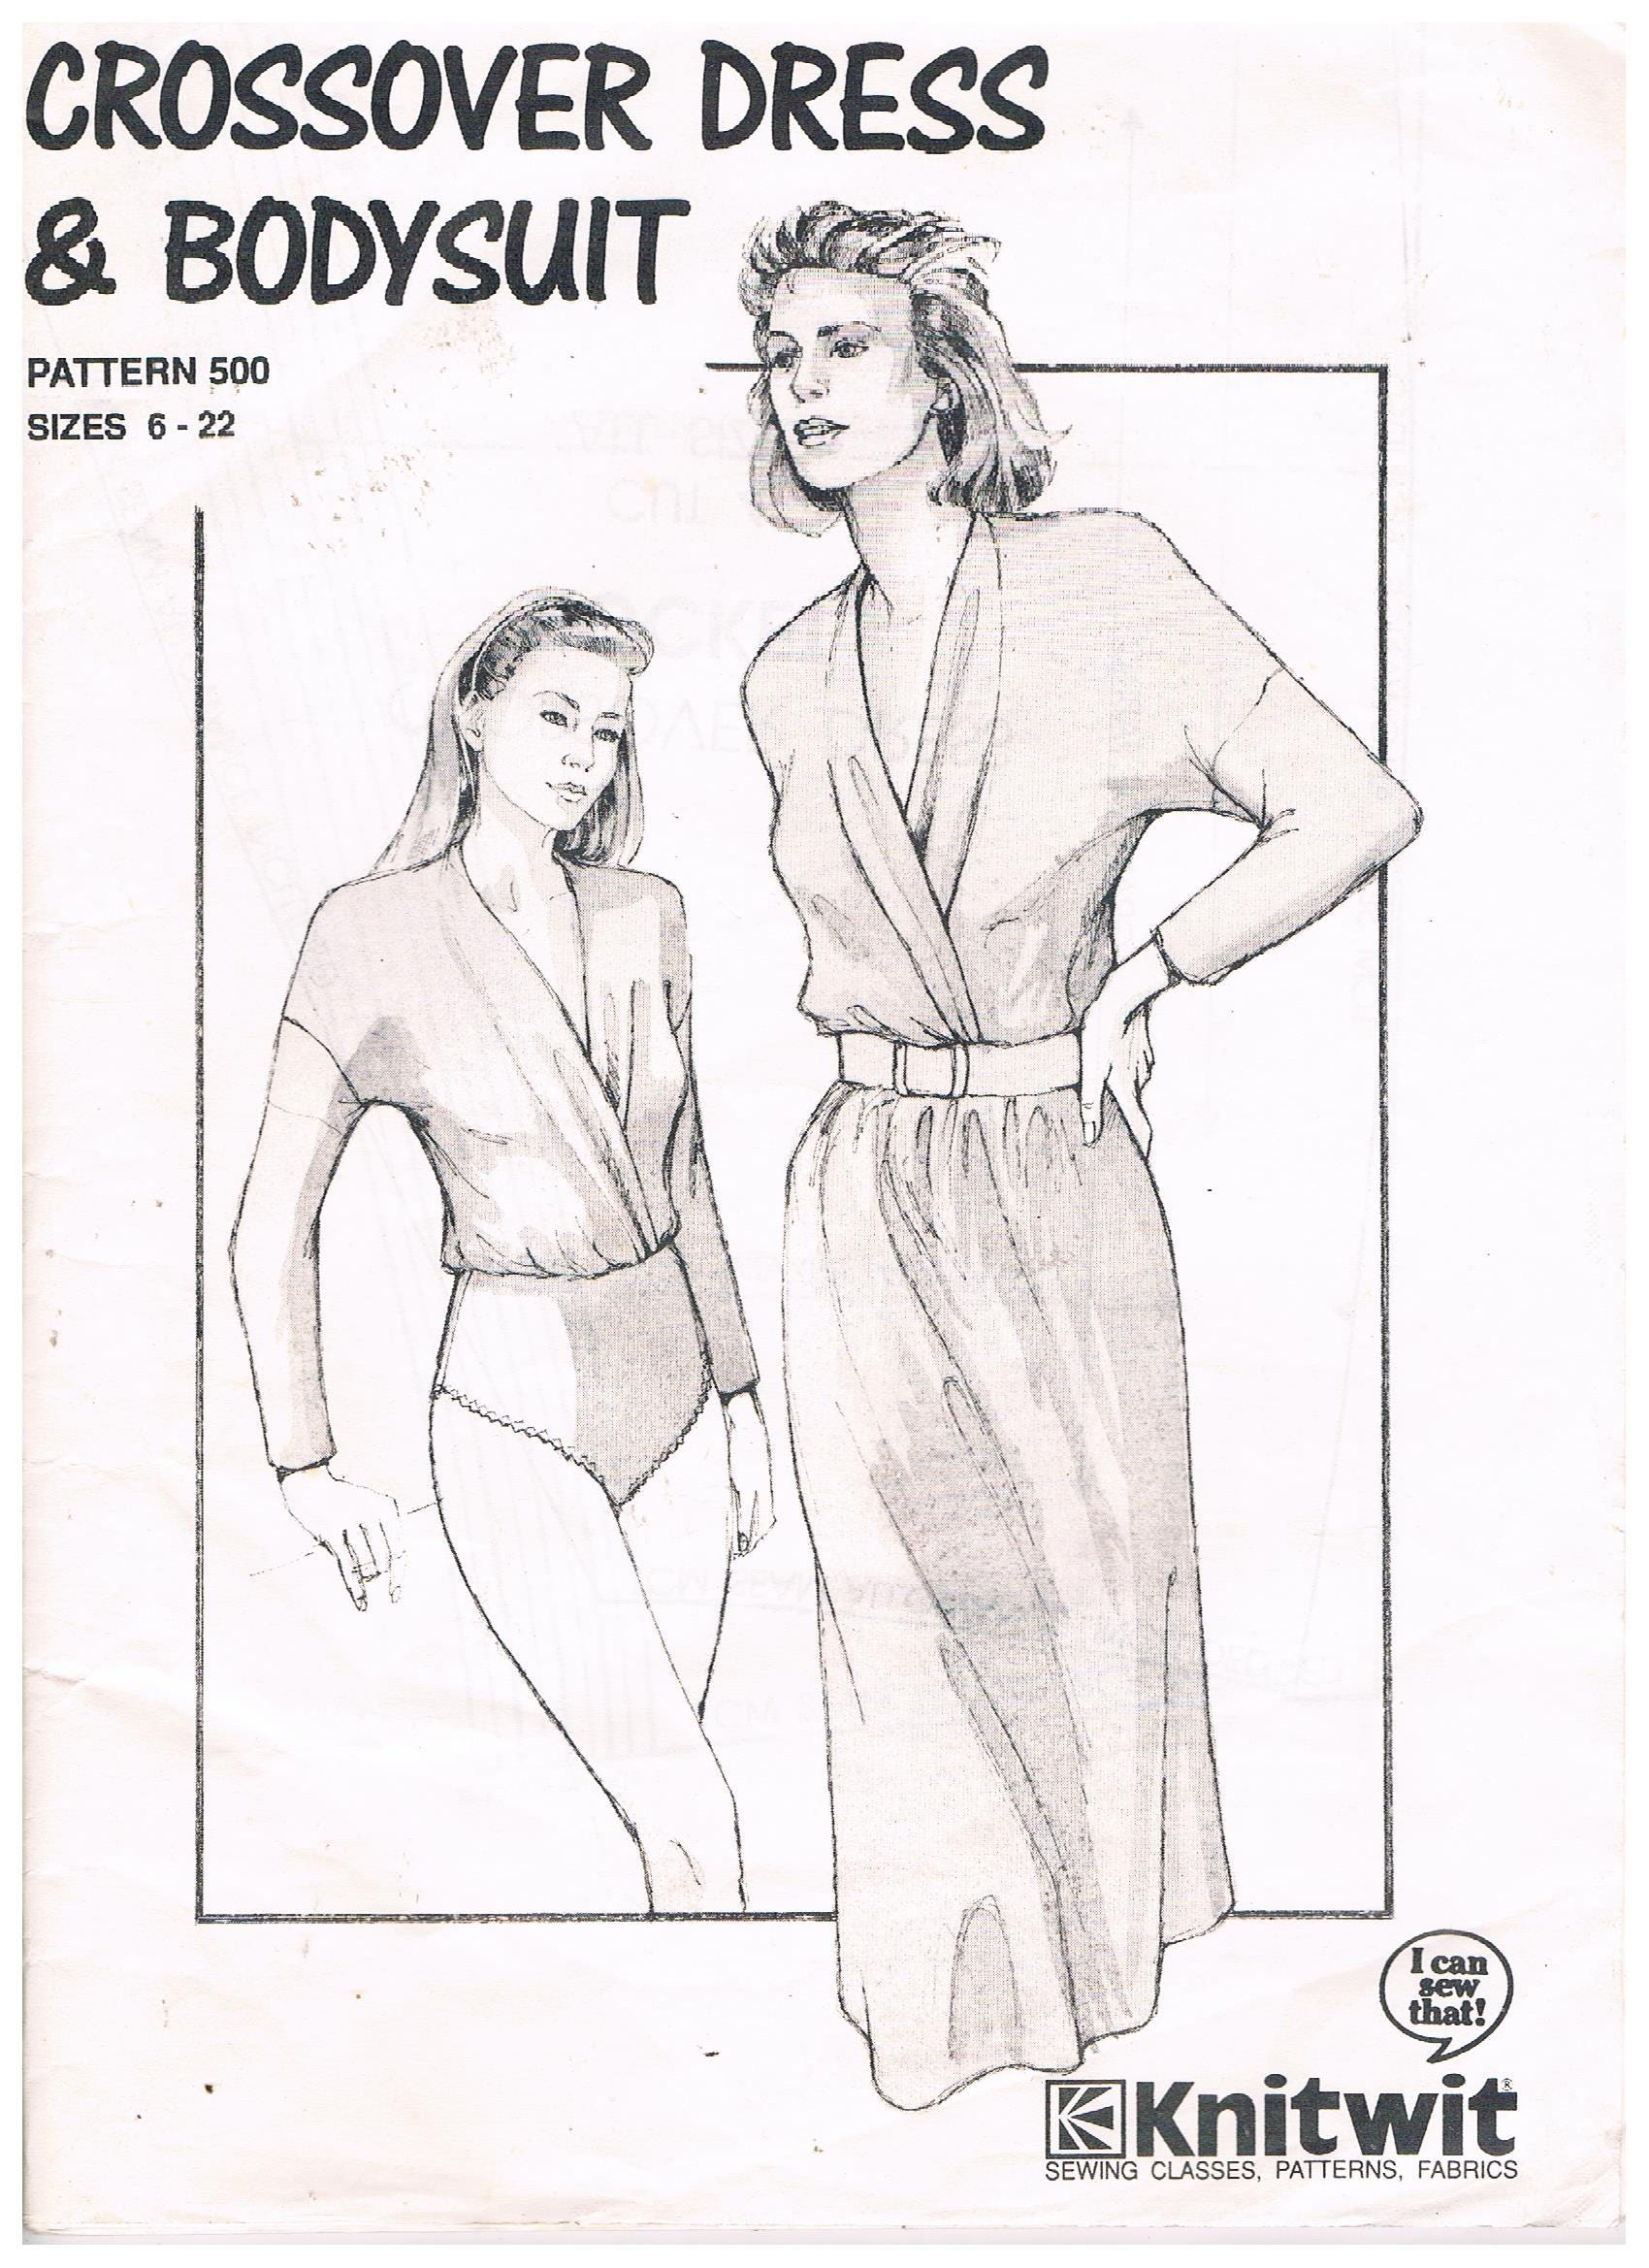 Crossover dress bodysuit sizes 6 to 22 by knitwit pattern no crossover dress bodysuit sizes 6 to 22 by knitwit pattern no 500 bankloansurffo Images